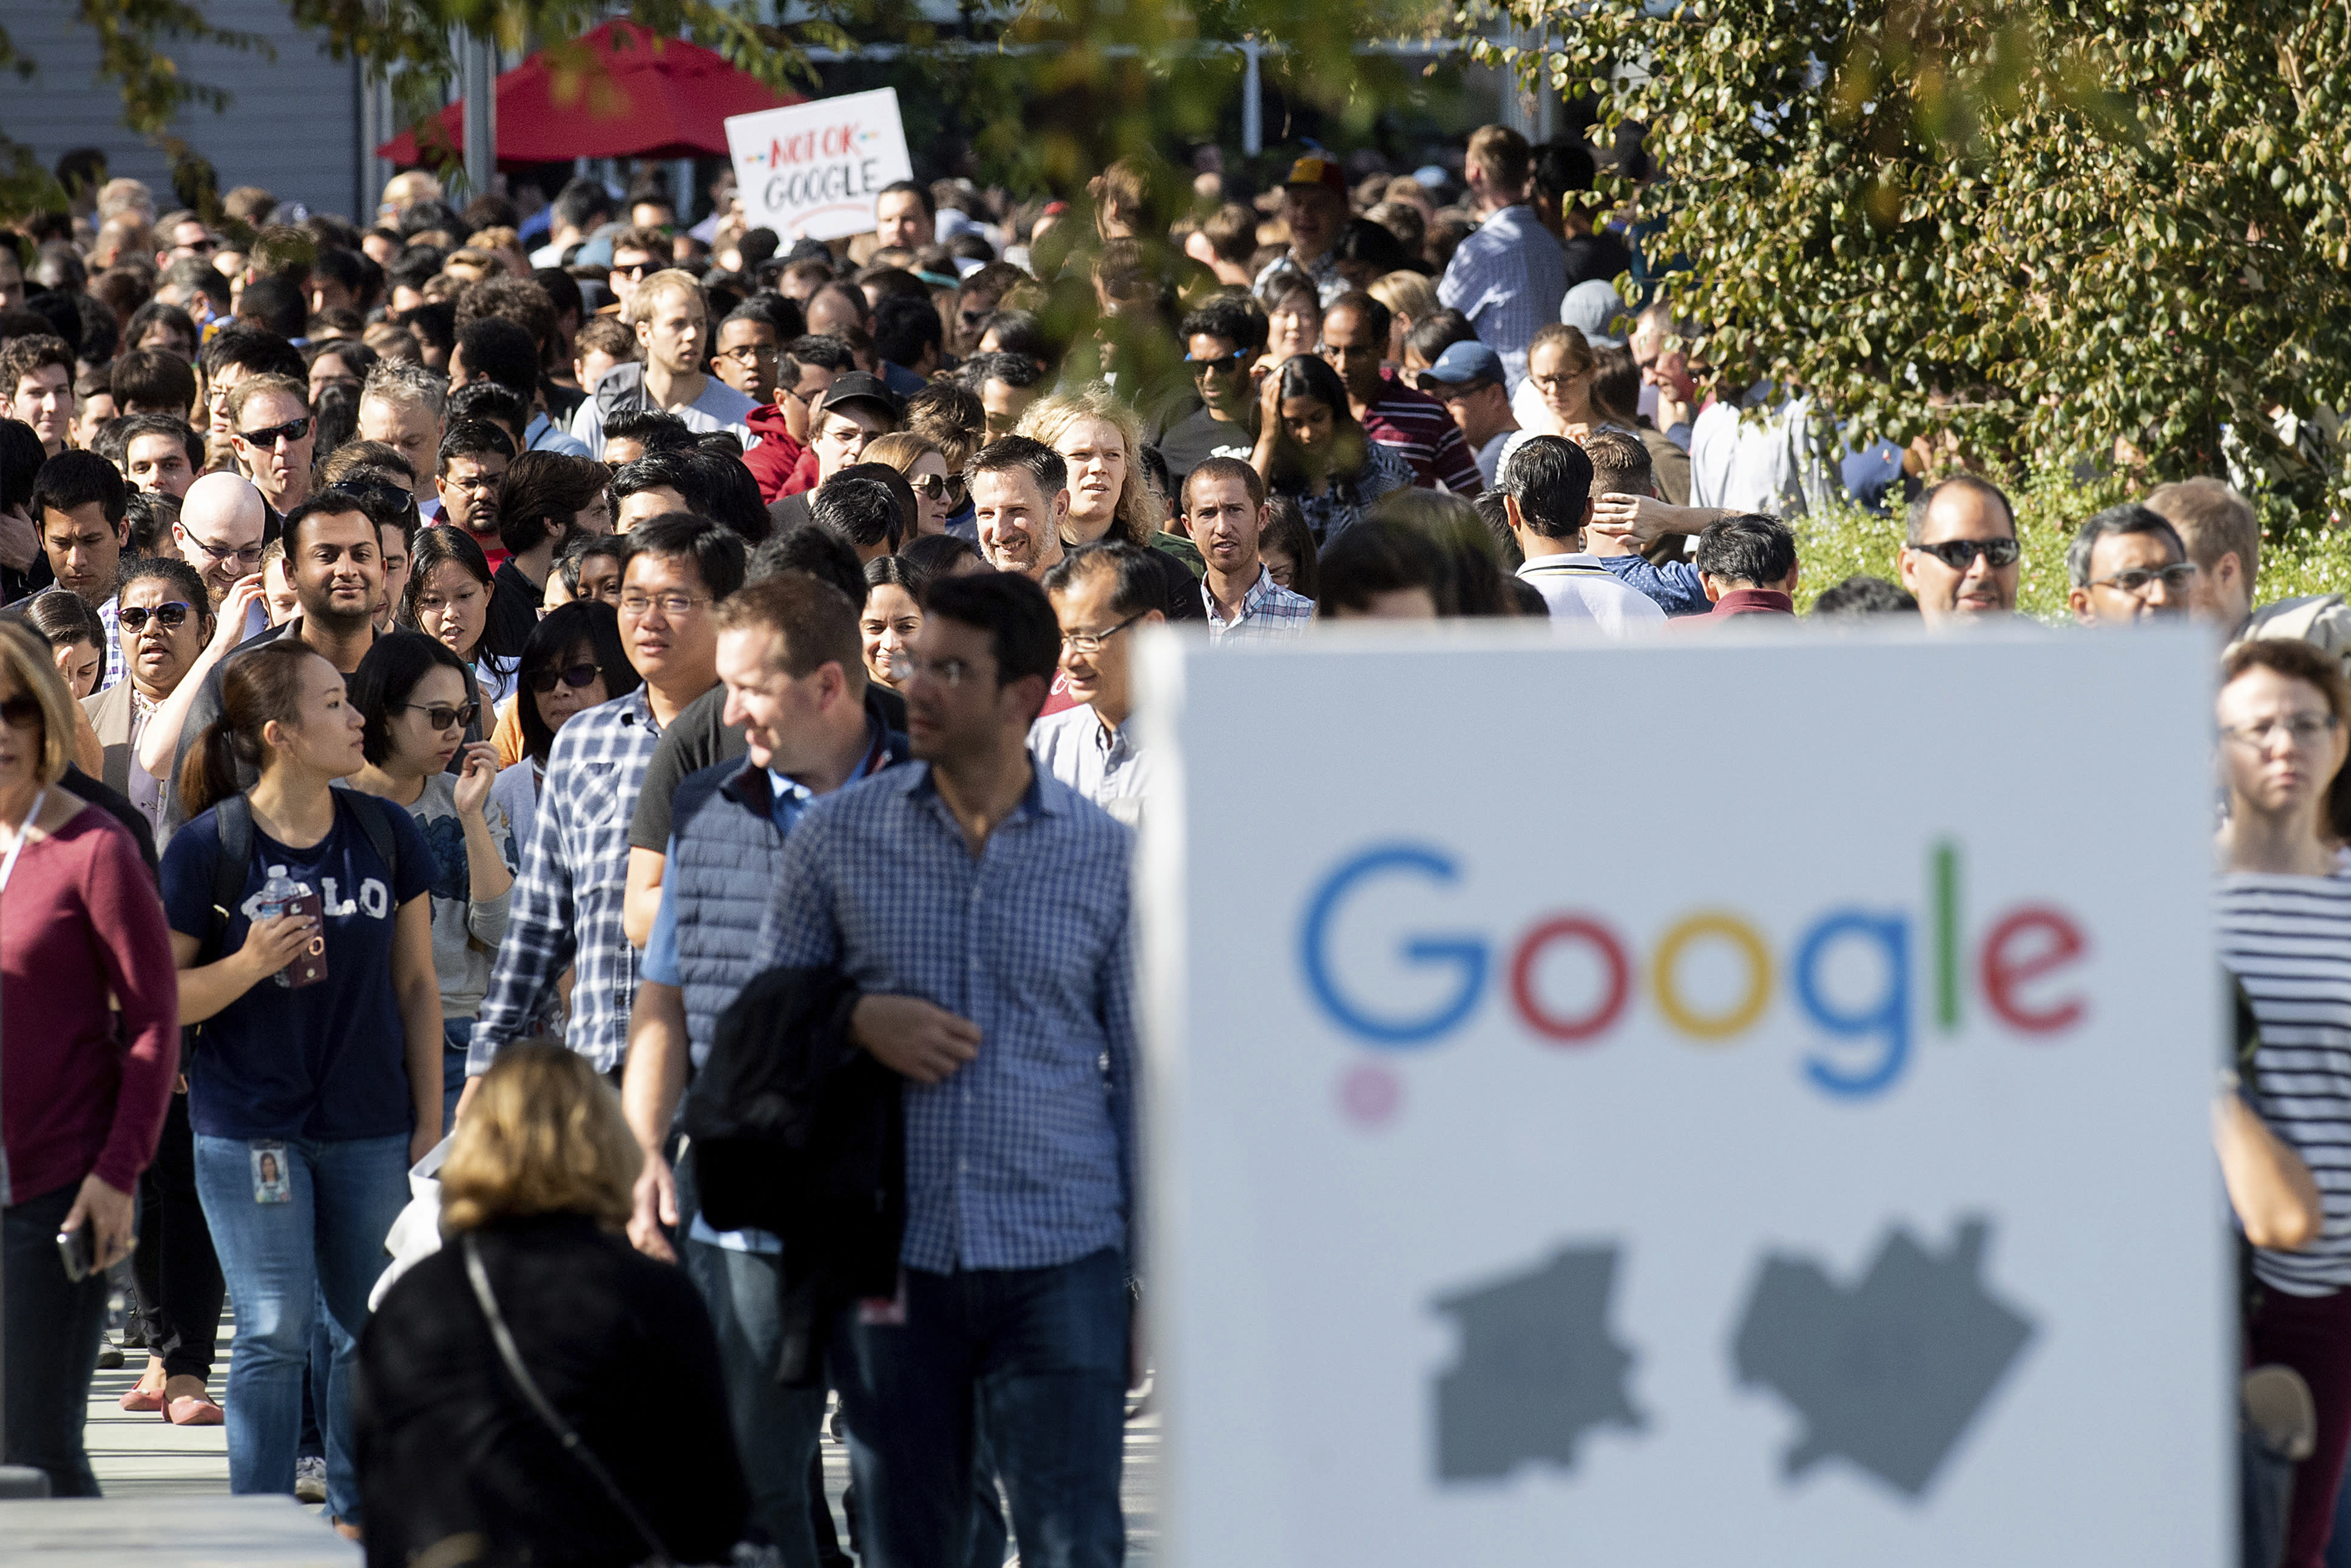 <p>Workers leave Google's Mountain View, Calif., main quad on Thursday, Nov. 1, 2018, after some Google employees walked off the job Thursday in a protest against what they said is the tech company's mishandling of sexual misconduct allegations against executives. (Photo: Noah Berger/AP) </p>